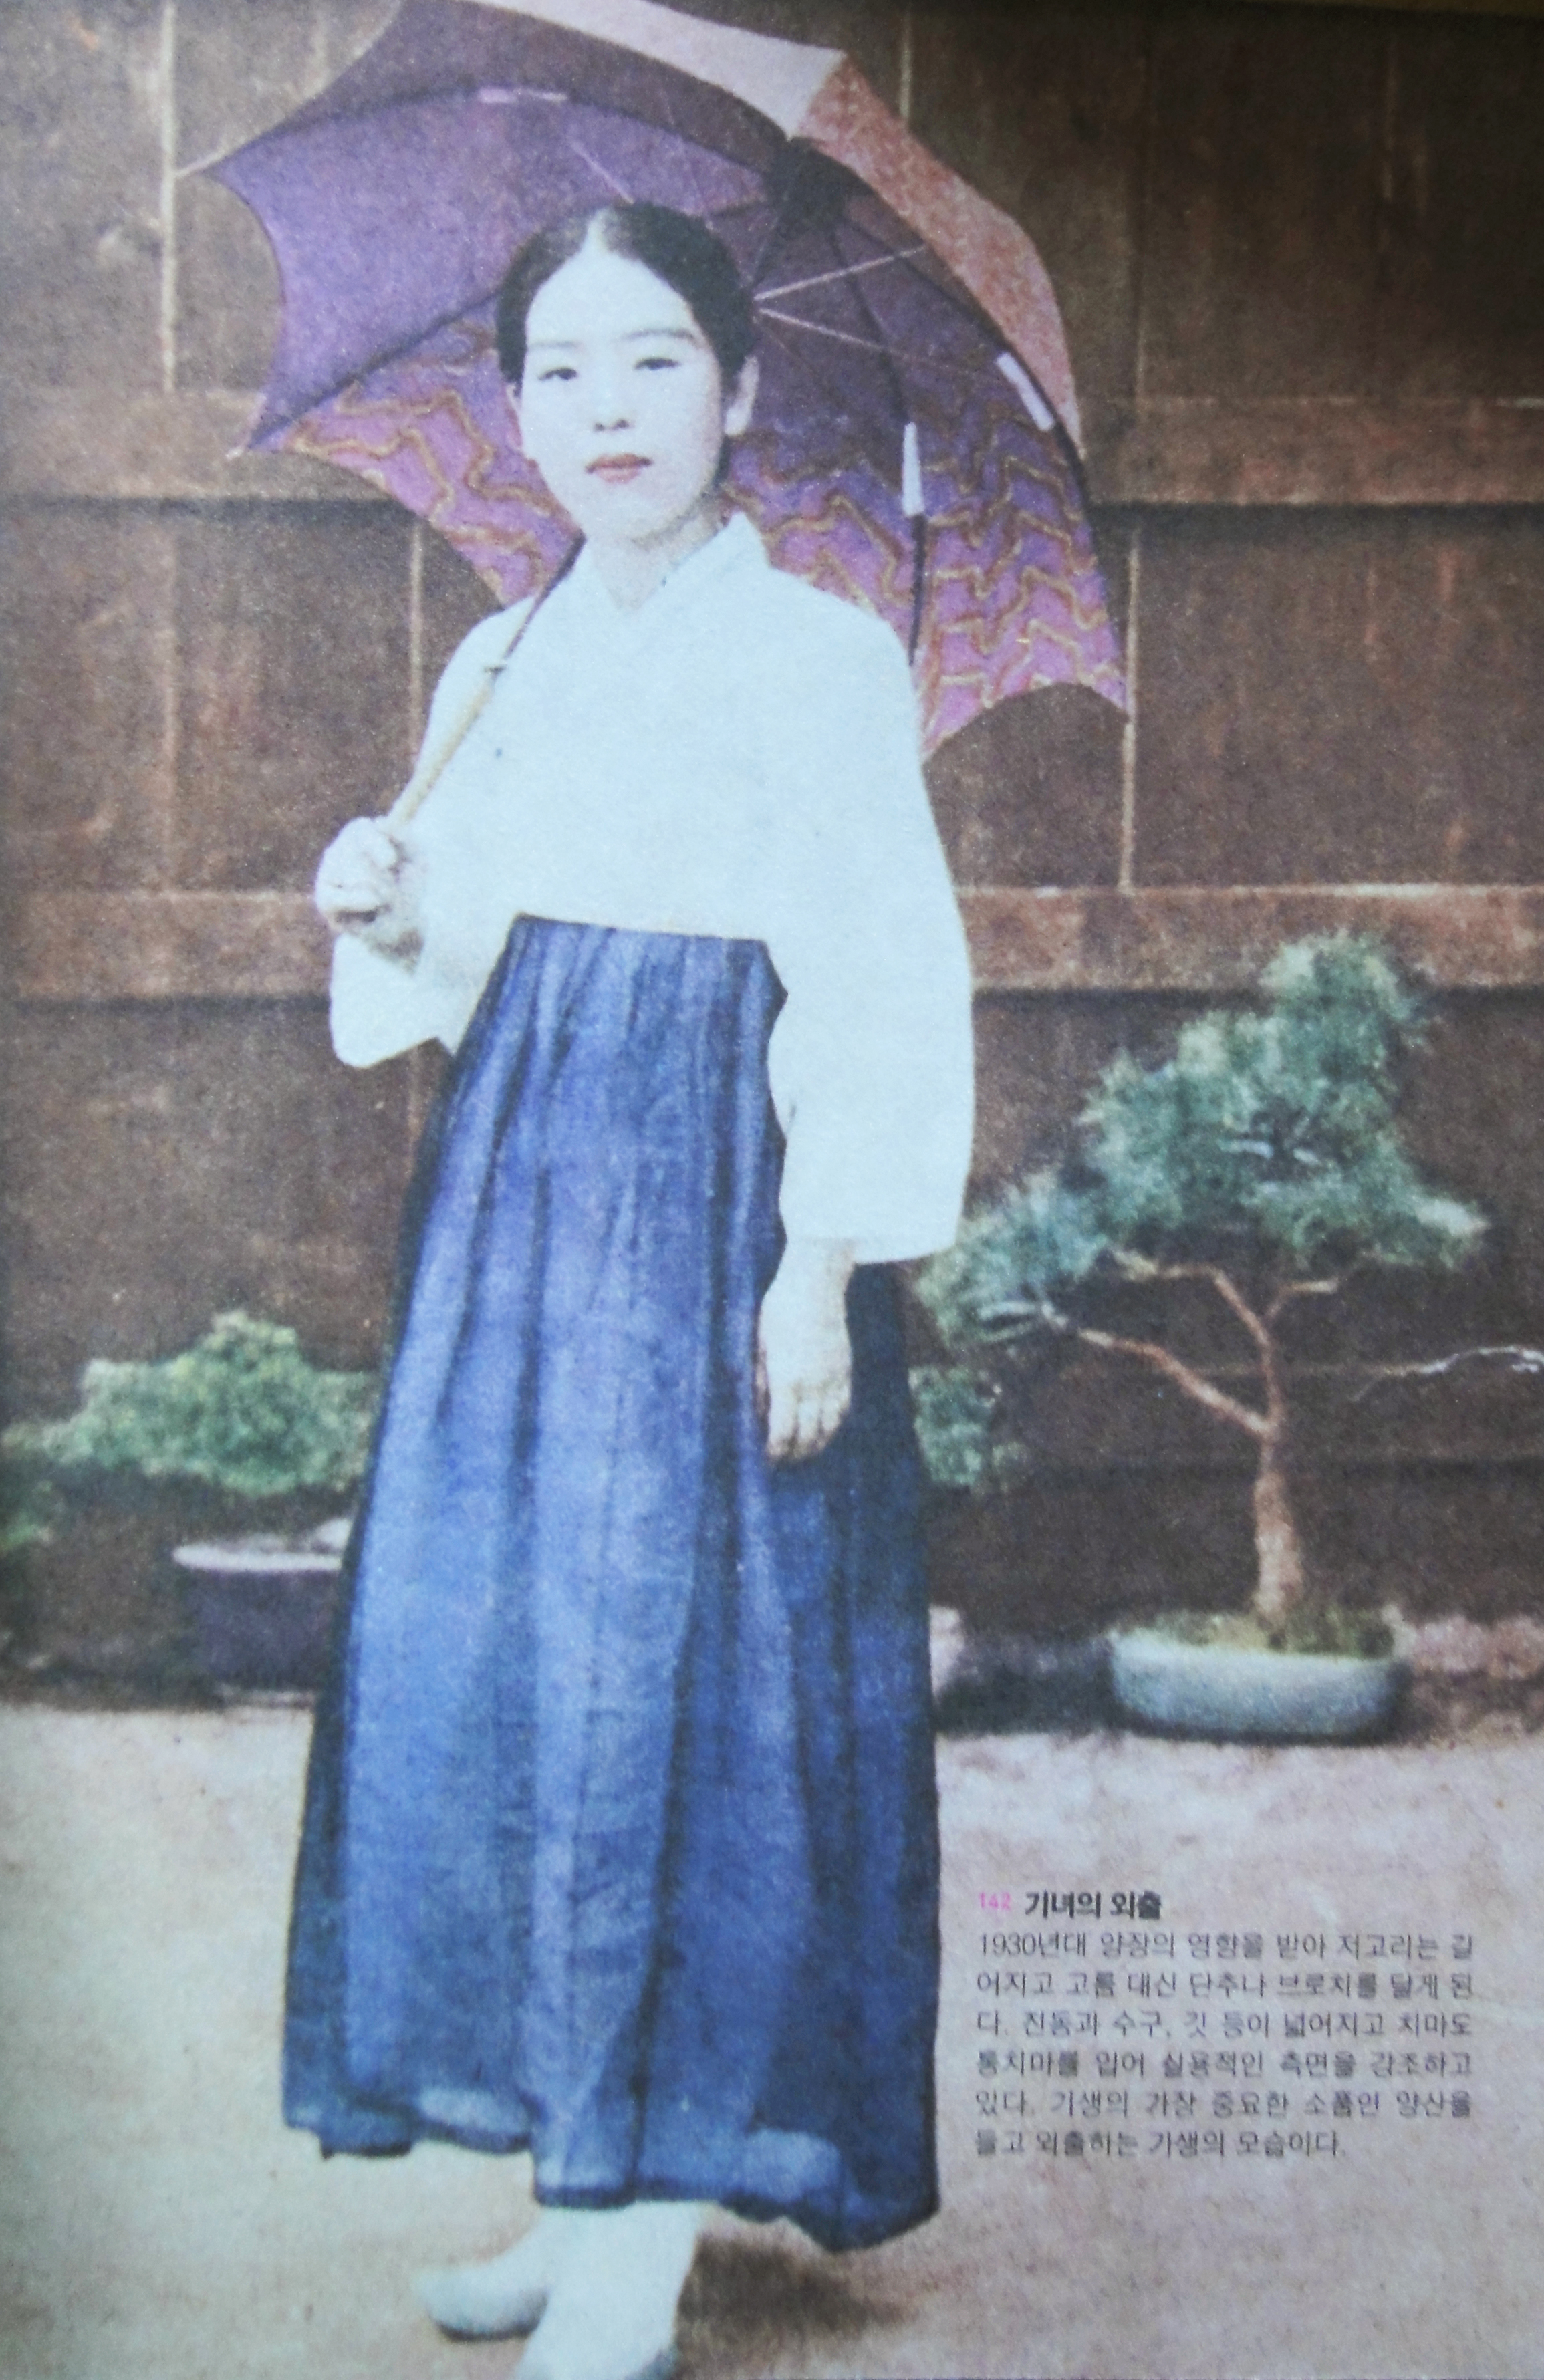 A gisaeng girl ready for a night out. The fastening of the top is Westernised - from tying up to buttons. The sun umbrella was a symbol of gisaengs back then.